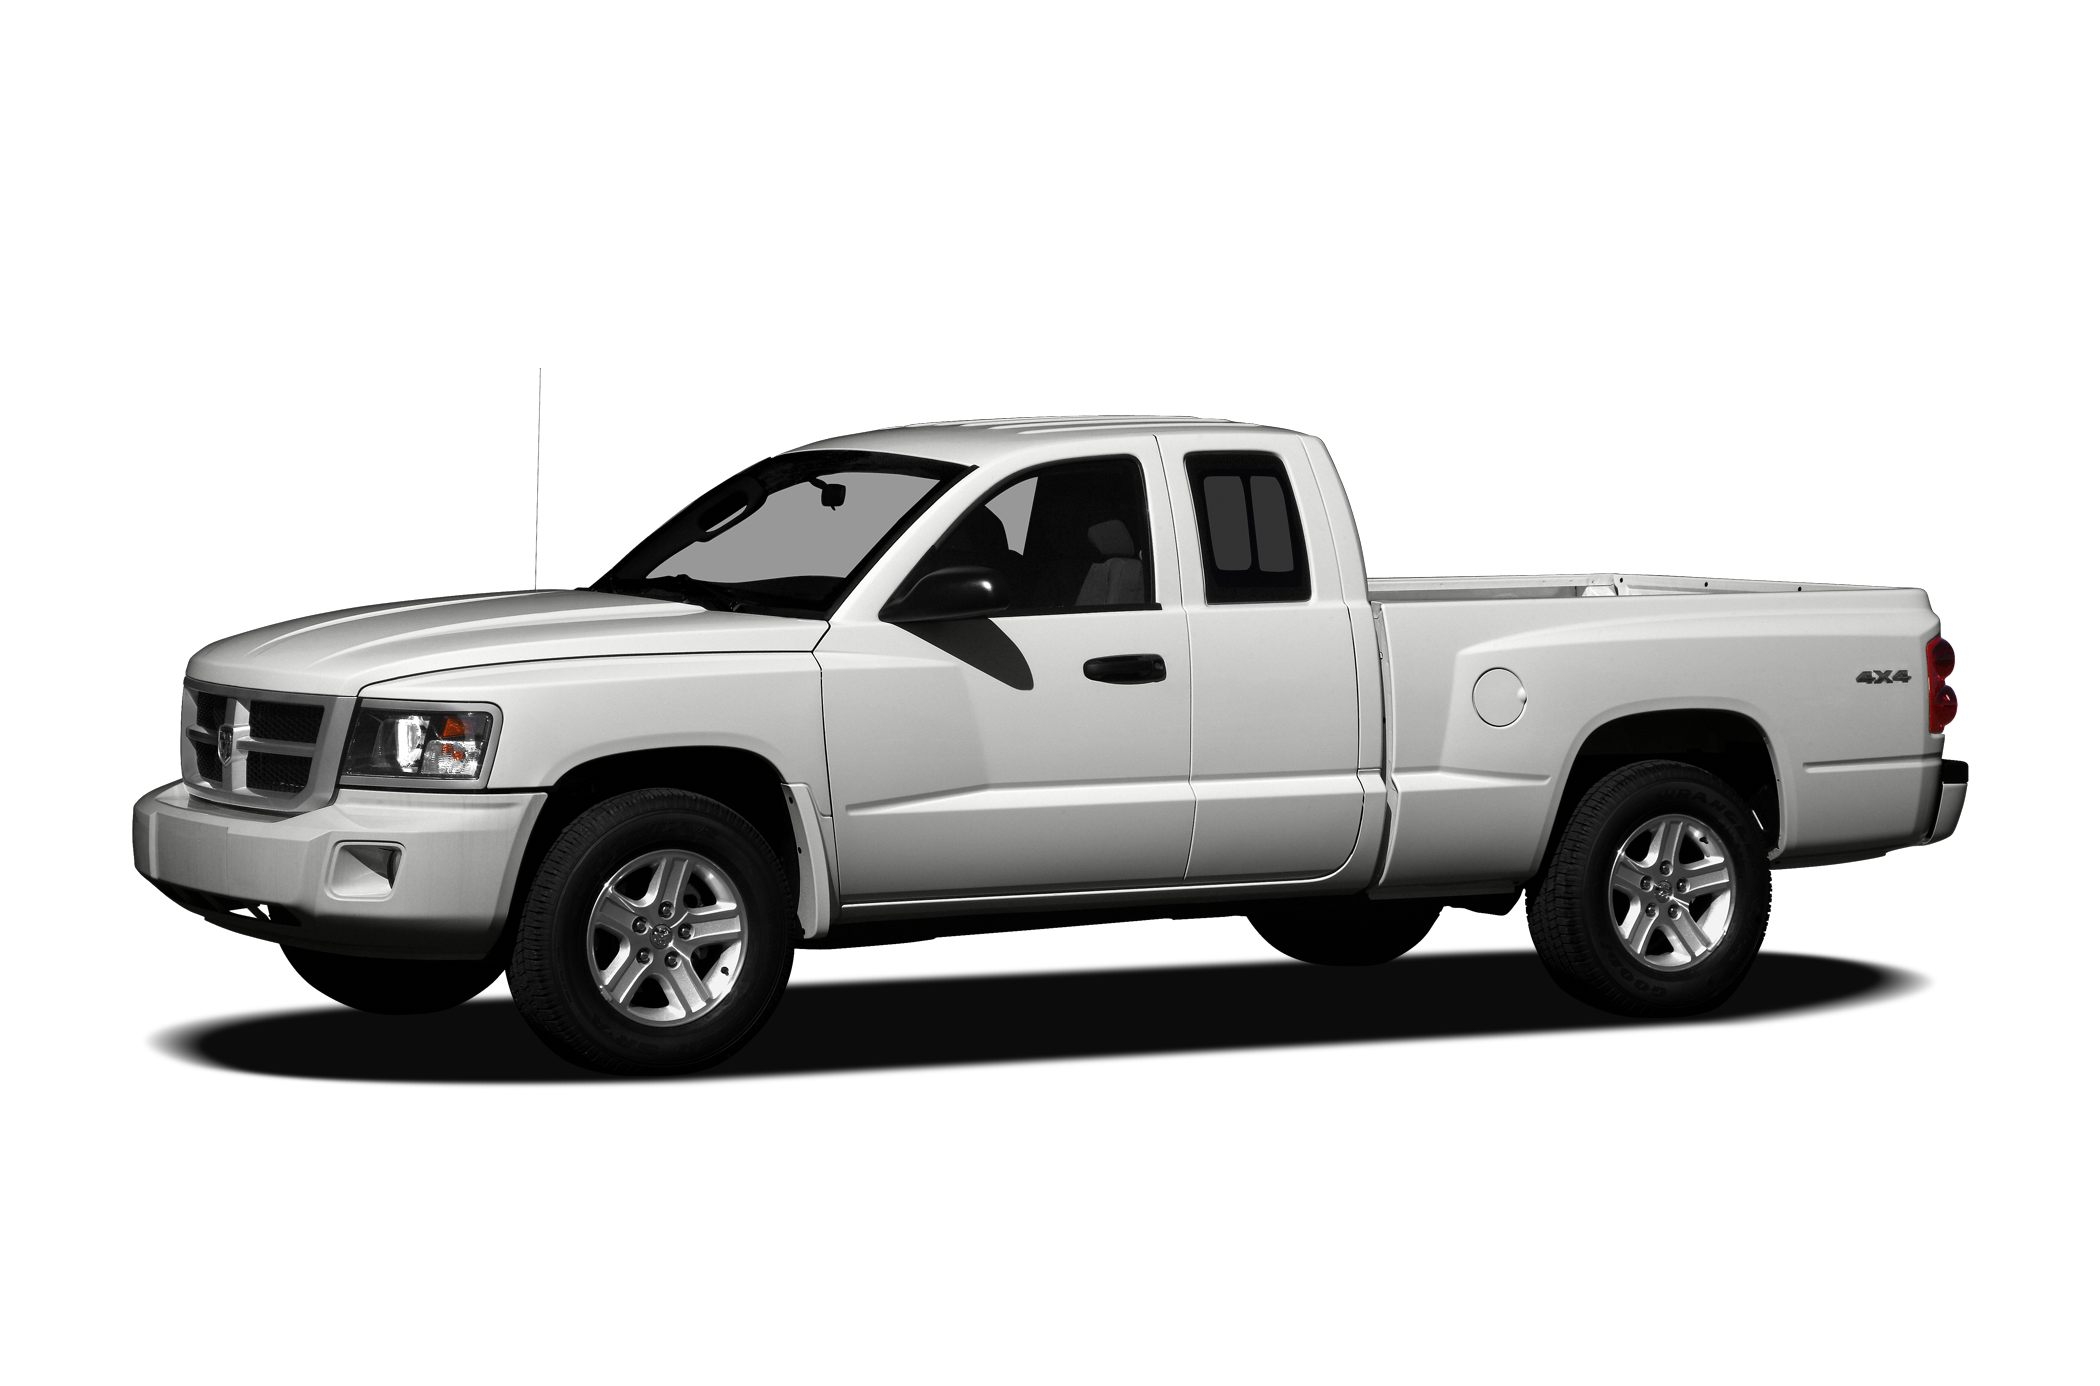 2008 Dodge Dakota ST Extended Cab Extended Cab Pickup for sale in Macon for $9,995 with 88,410 miles